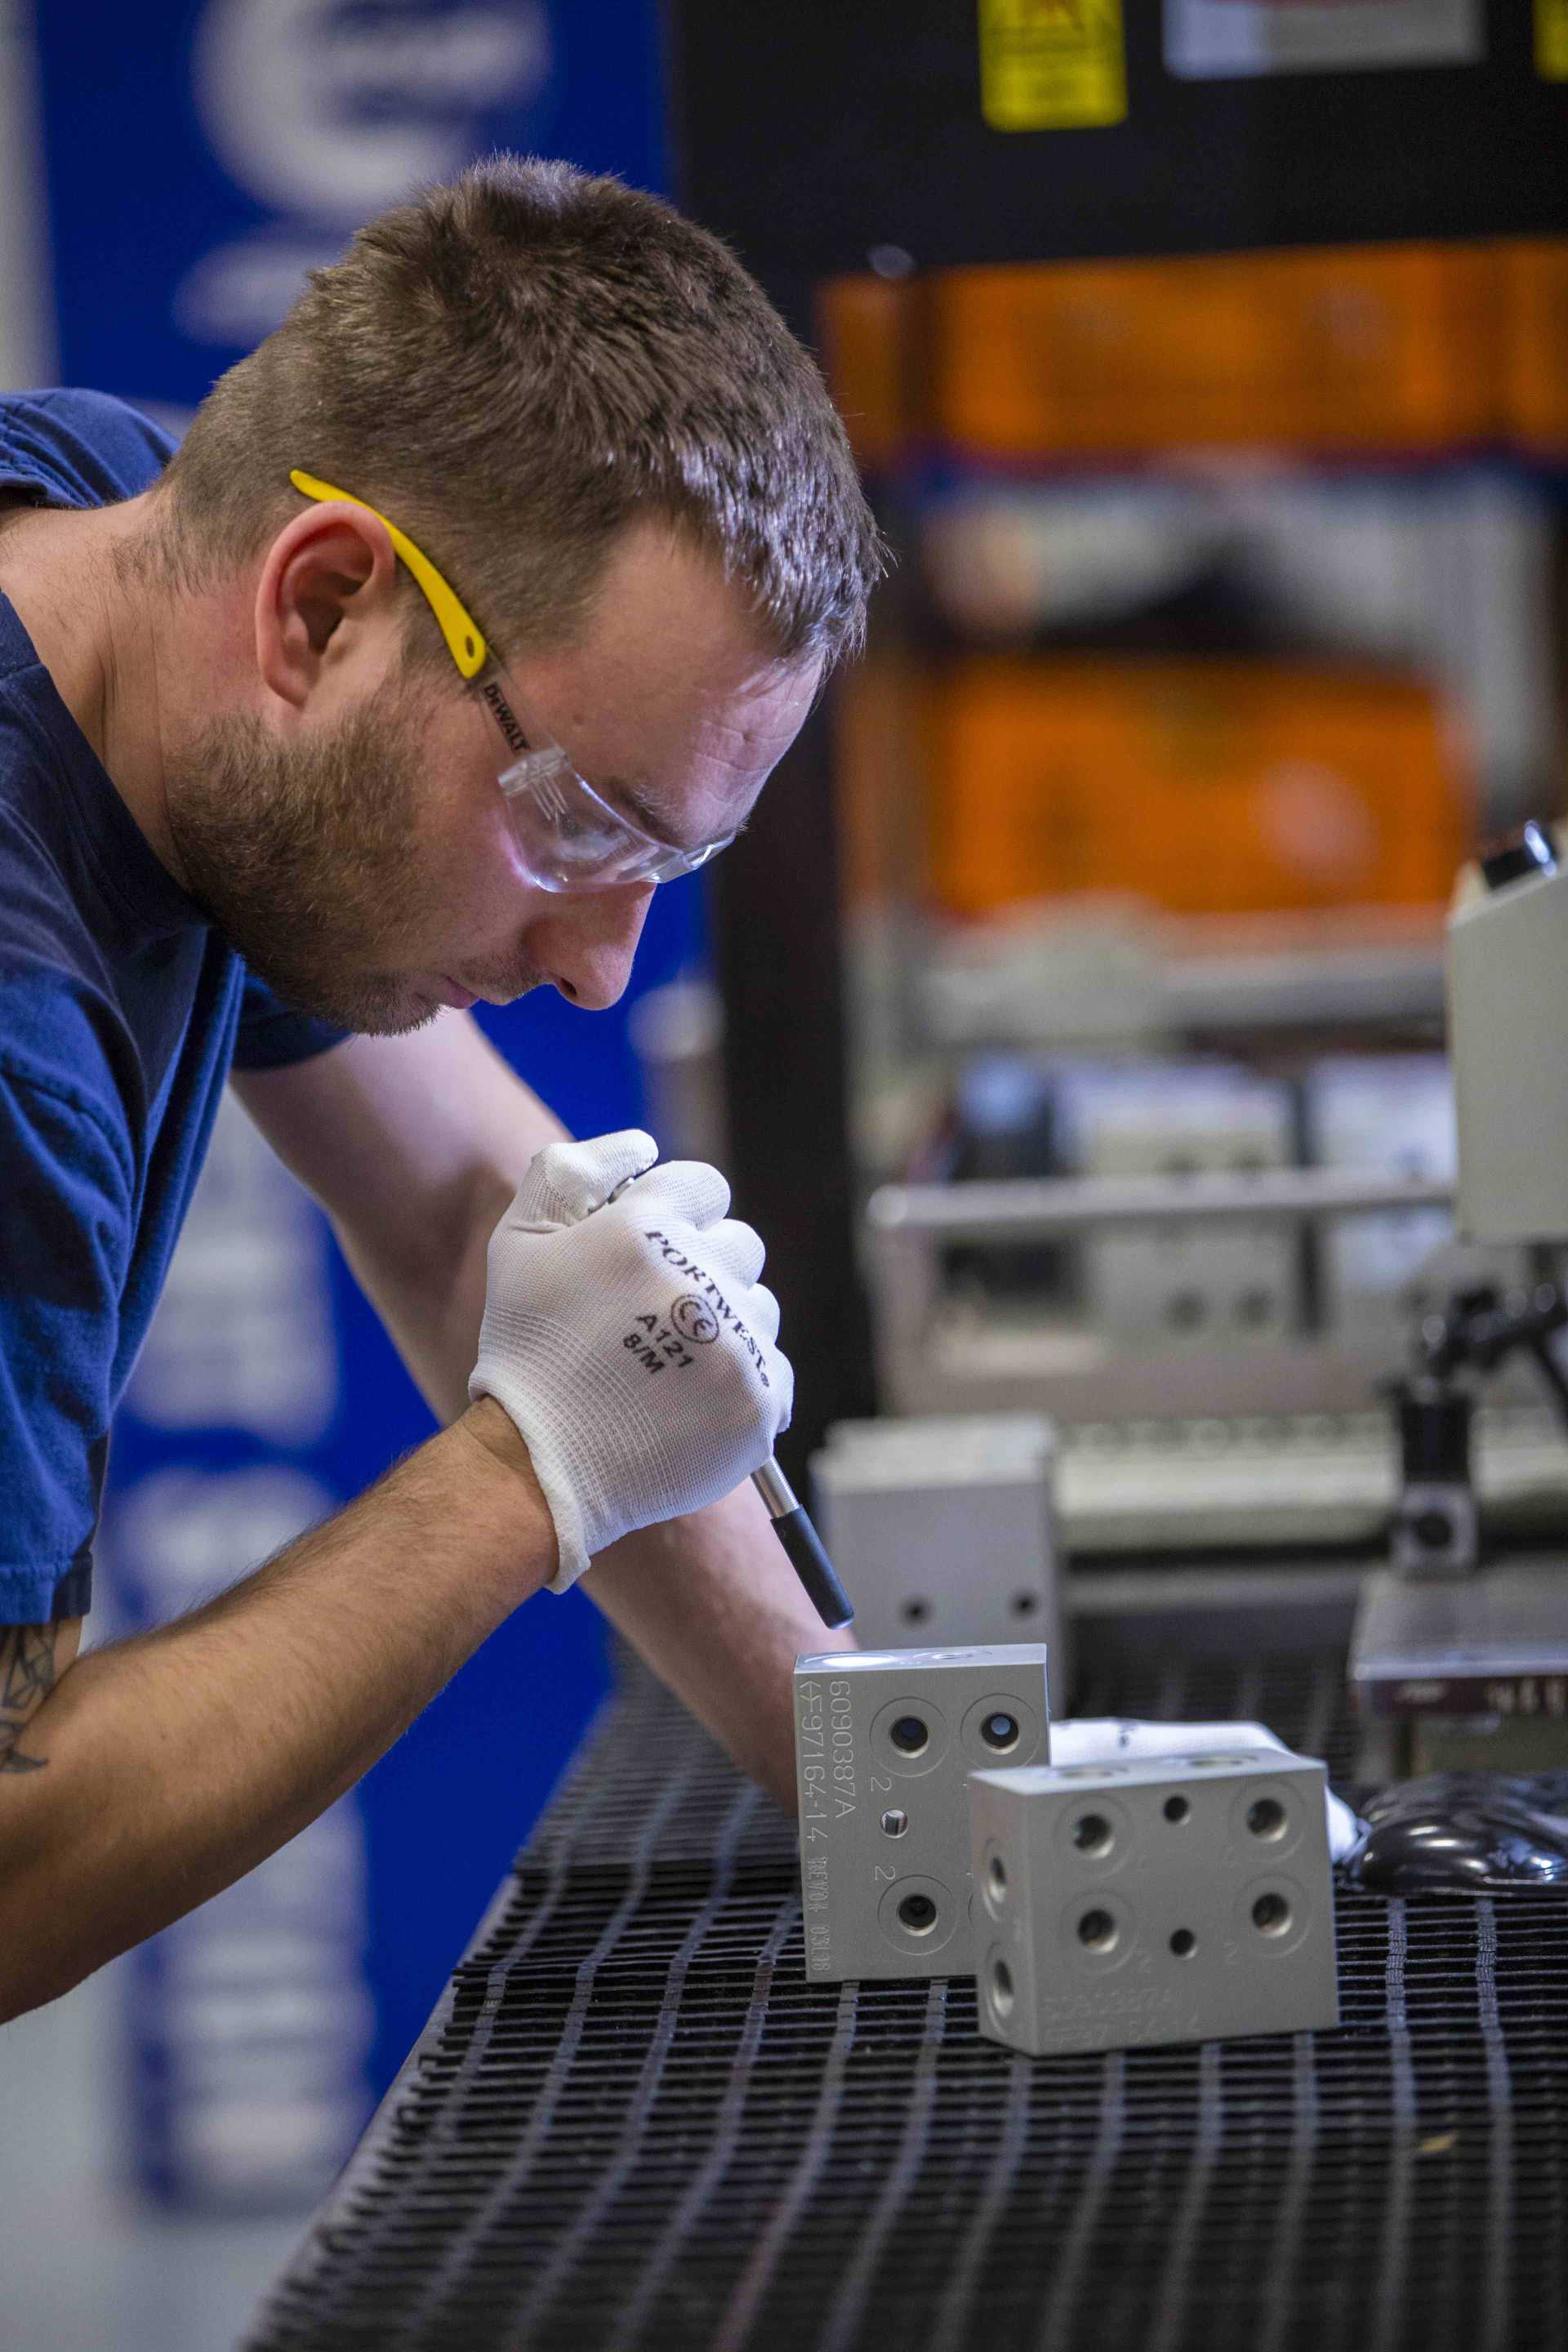 Export - The company plans to retain a new night shift introduced earlier this year to meet customer demand, and is currently recruiting across all of its shifts - image courtesy of HydraForce.